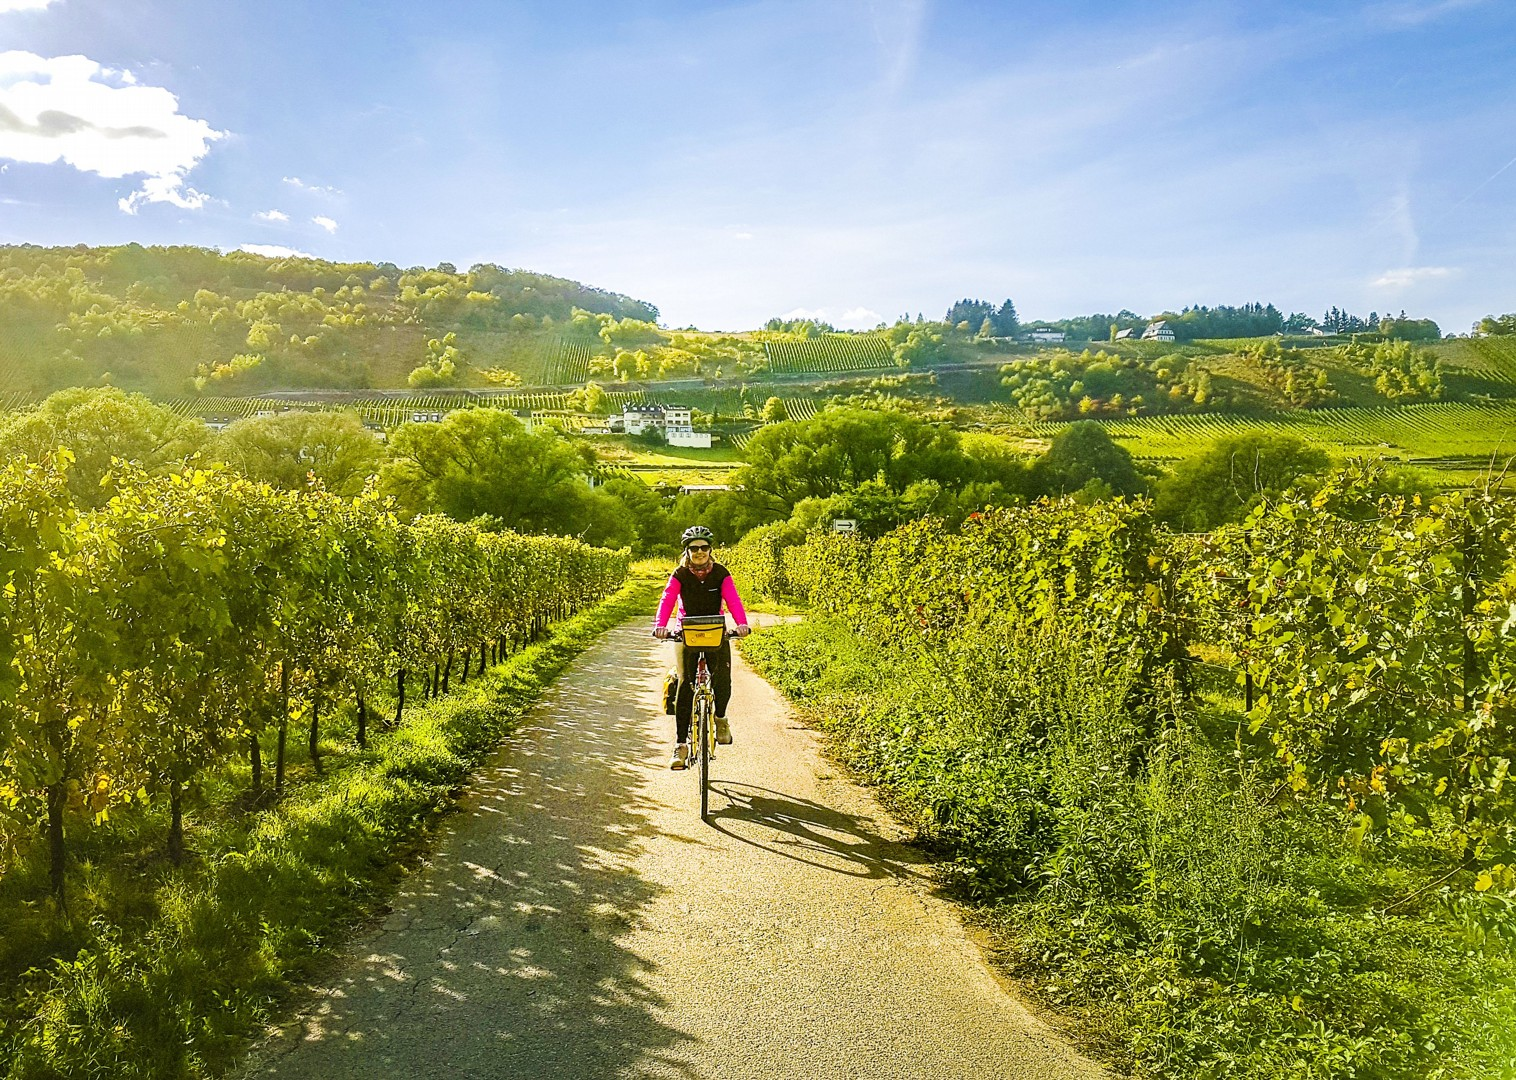 german-vineyards-cycling-moselle-valley-wine-skedaddle.jpg - Germany - Moselle Valley - Self-Guided Leisure Cycling Holiday - Leisure Cycling